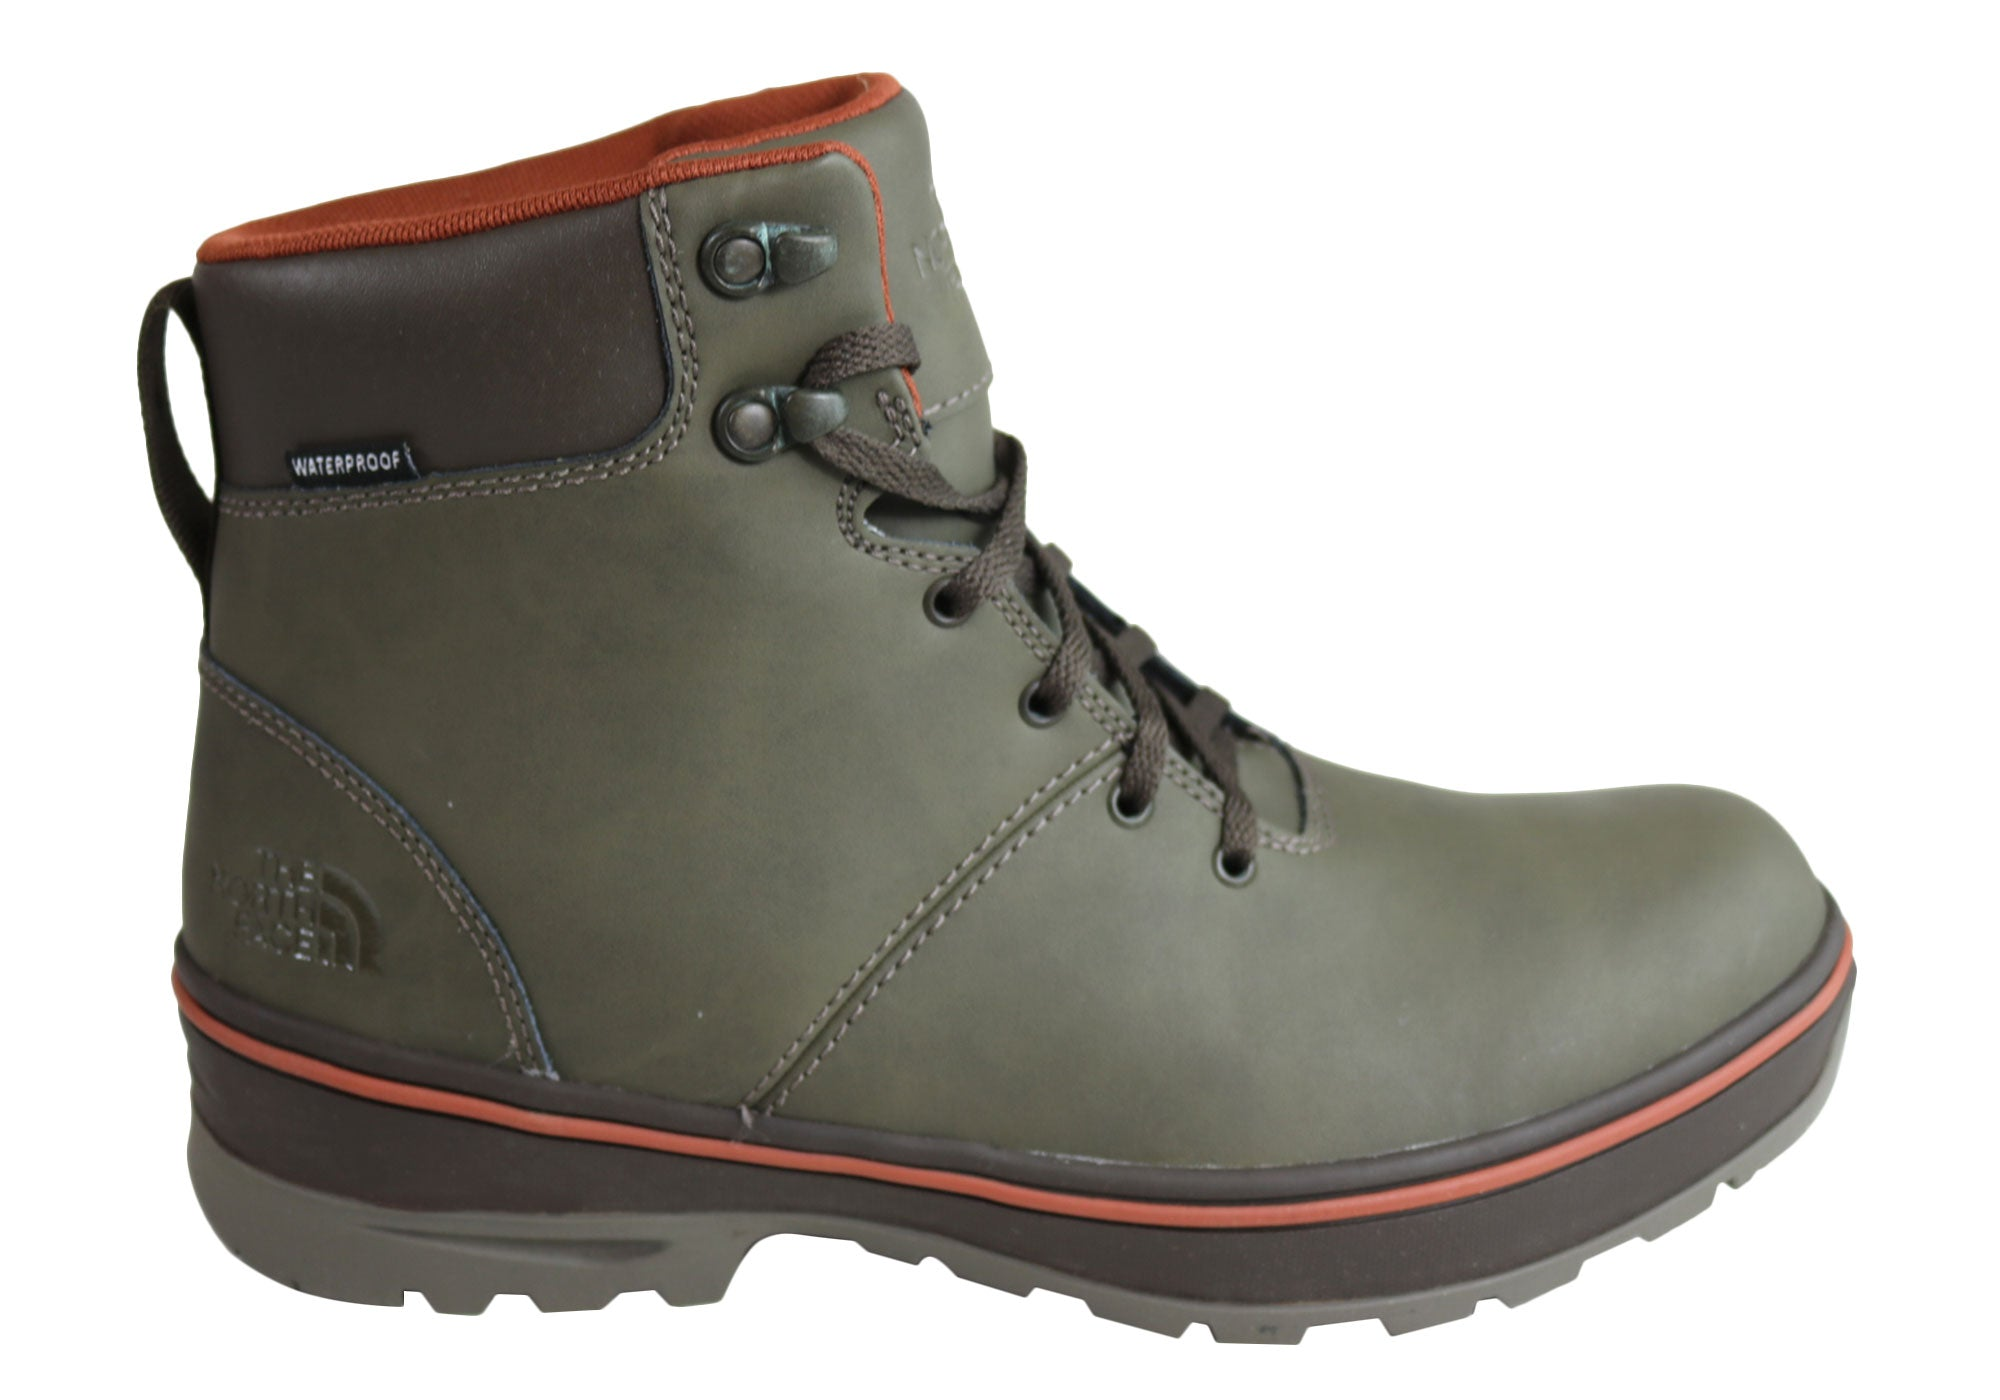 10fdcb09383 The North Face Mens Lace Up Comfort Ballard Commuter Waterproof ...